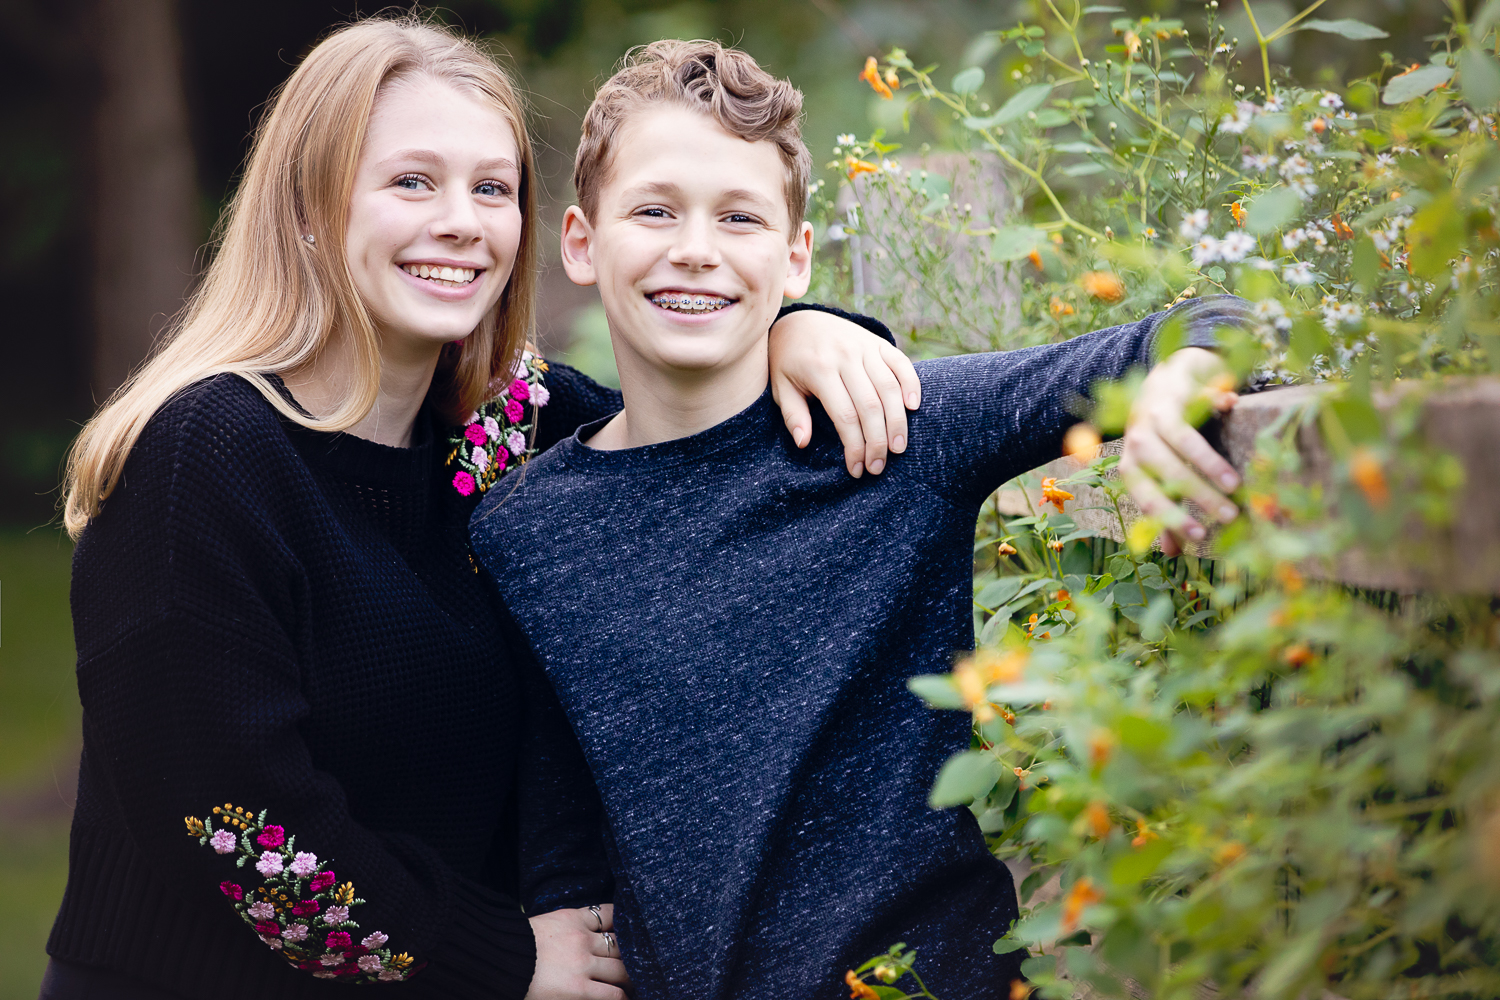 Sibling portraiture by Aliza